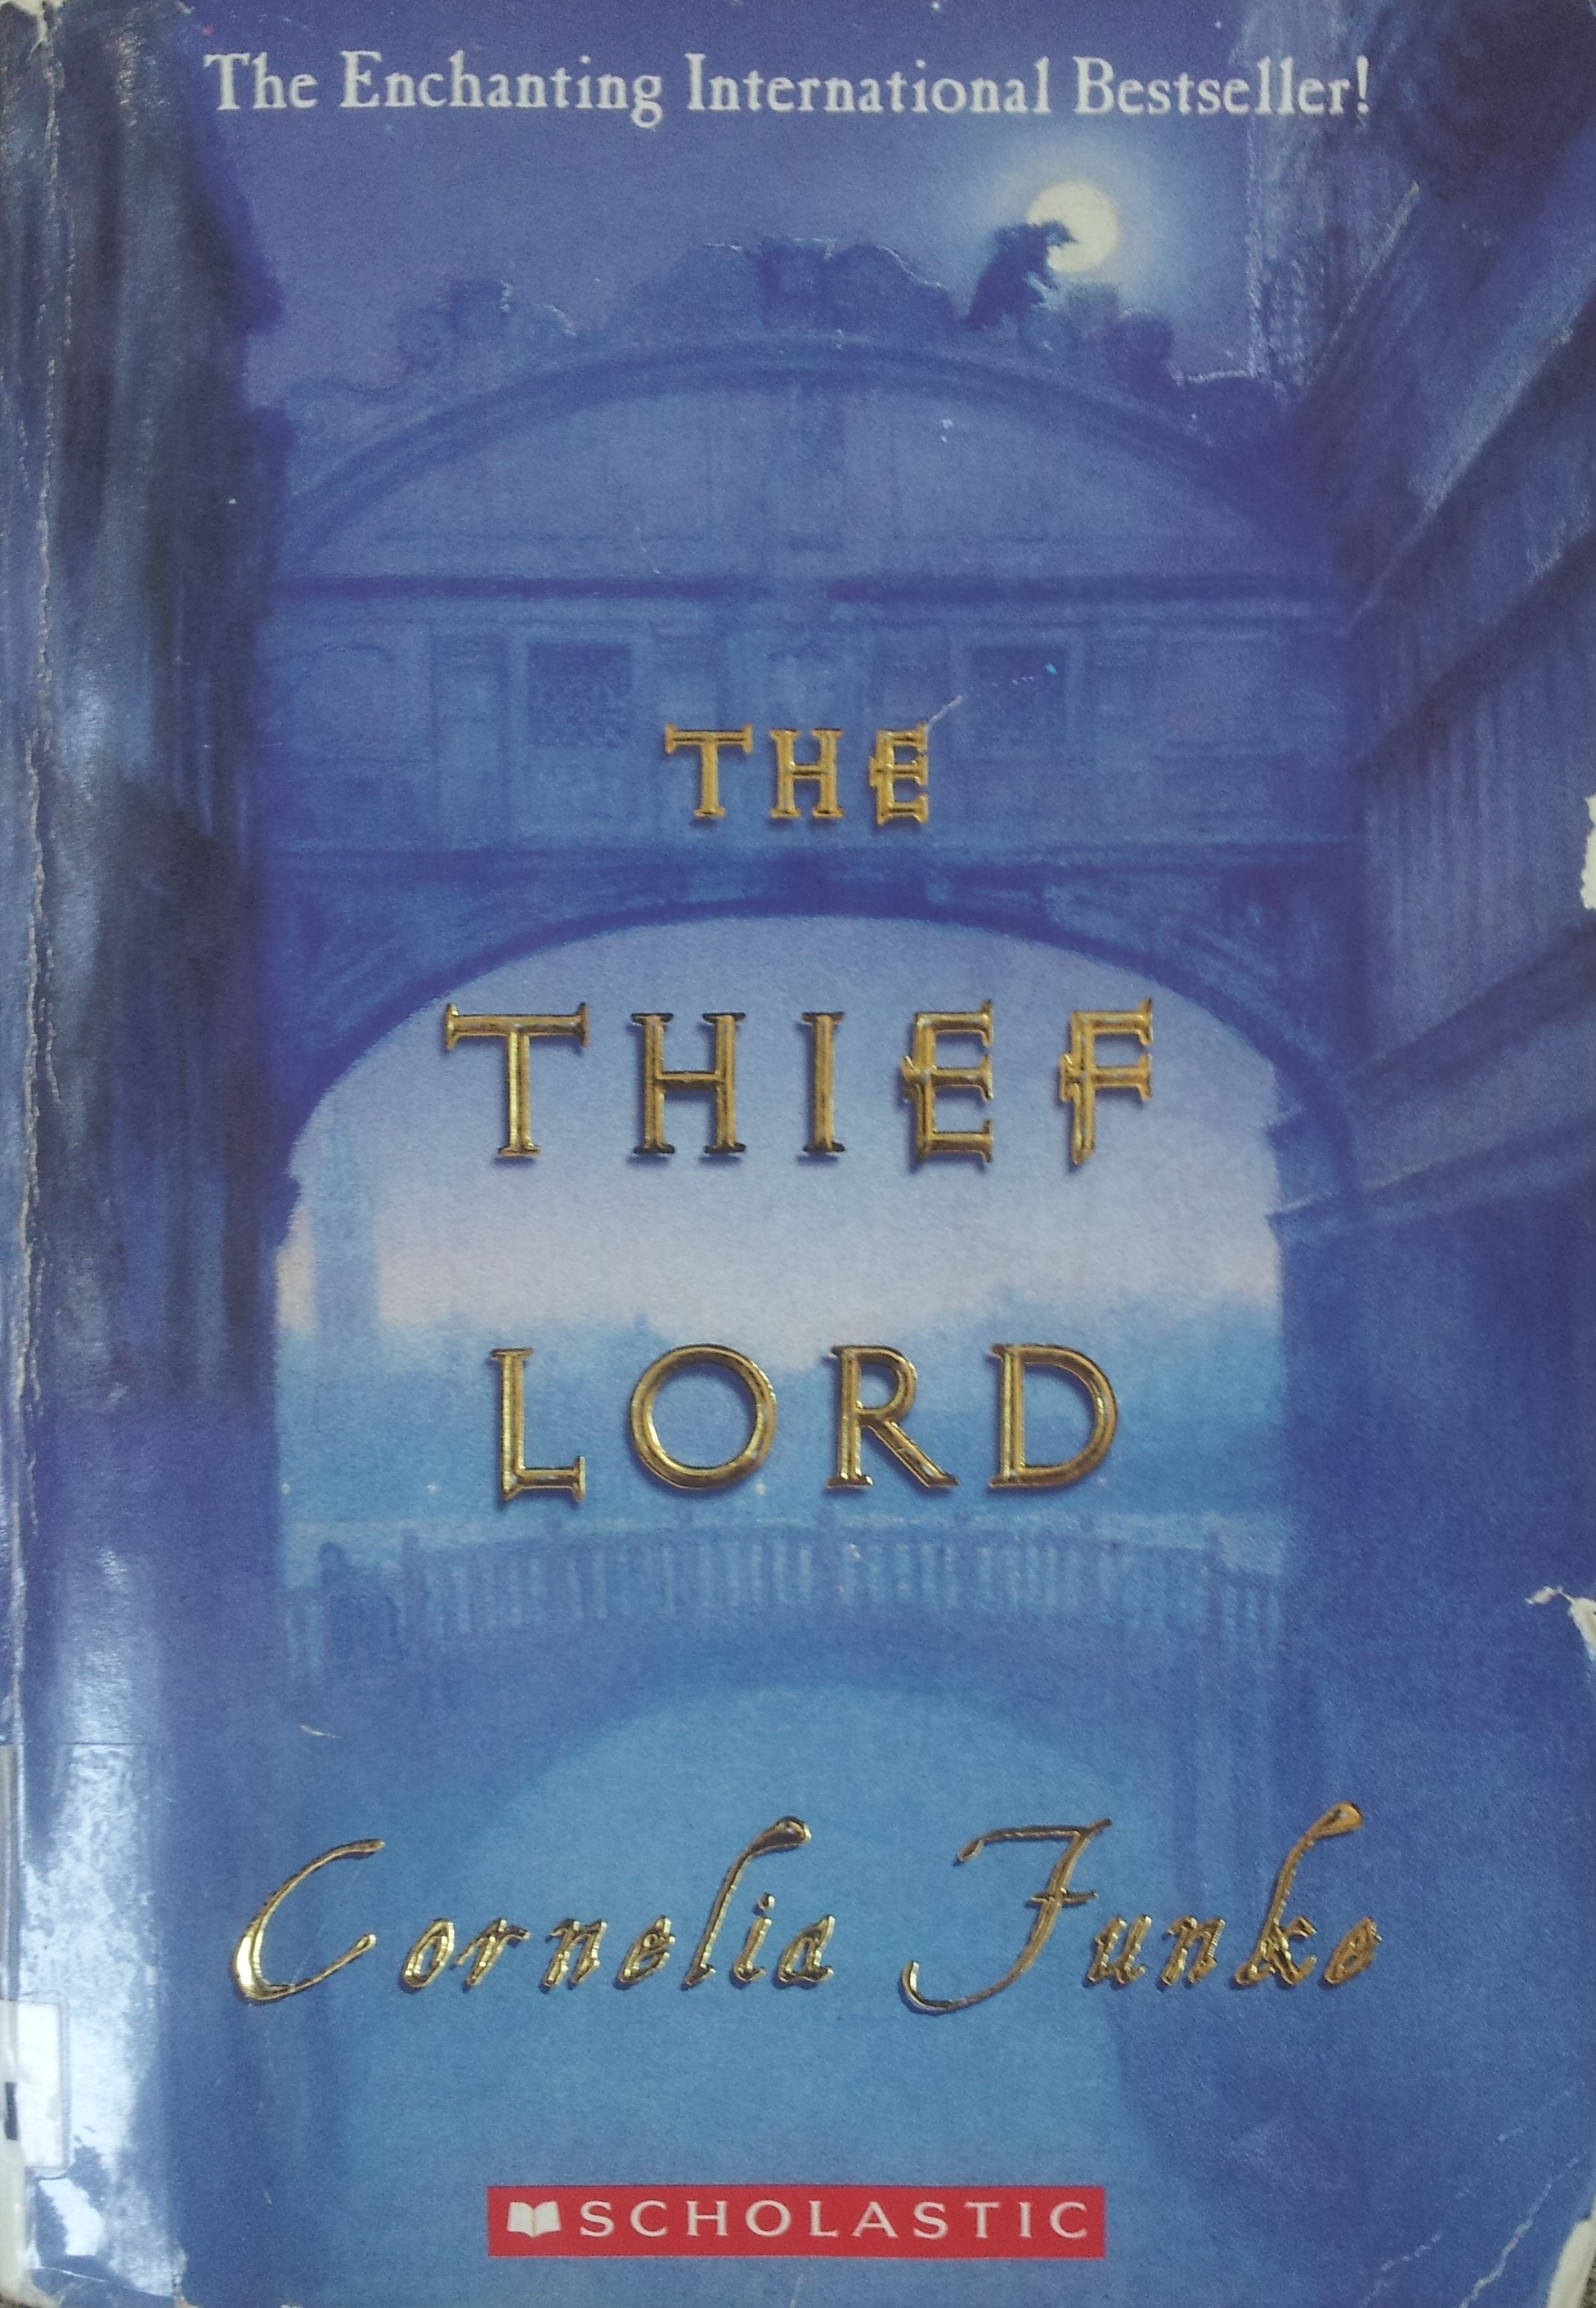 Cornelia Funke Libros Quick Book Review The Thief Lord By Cornelia Funke Concerning